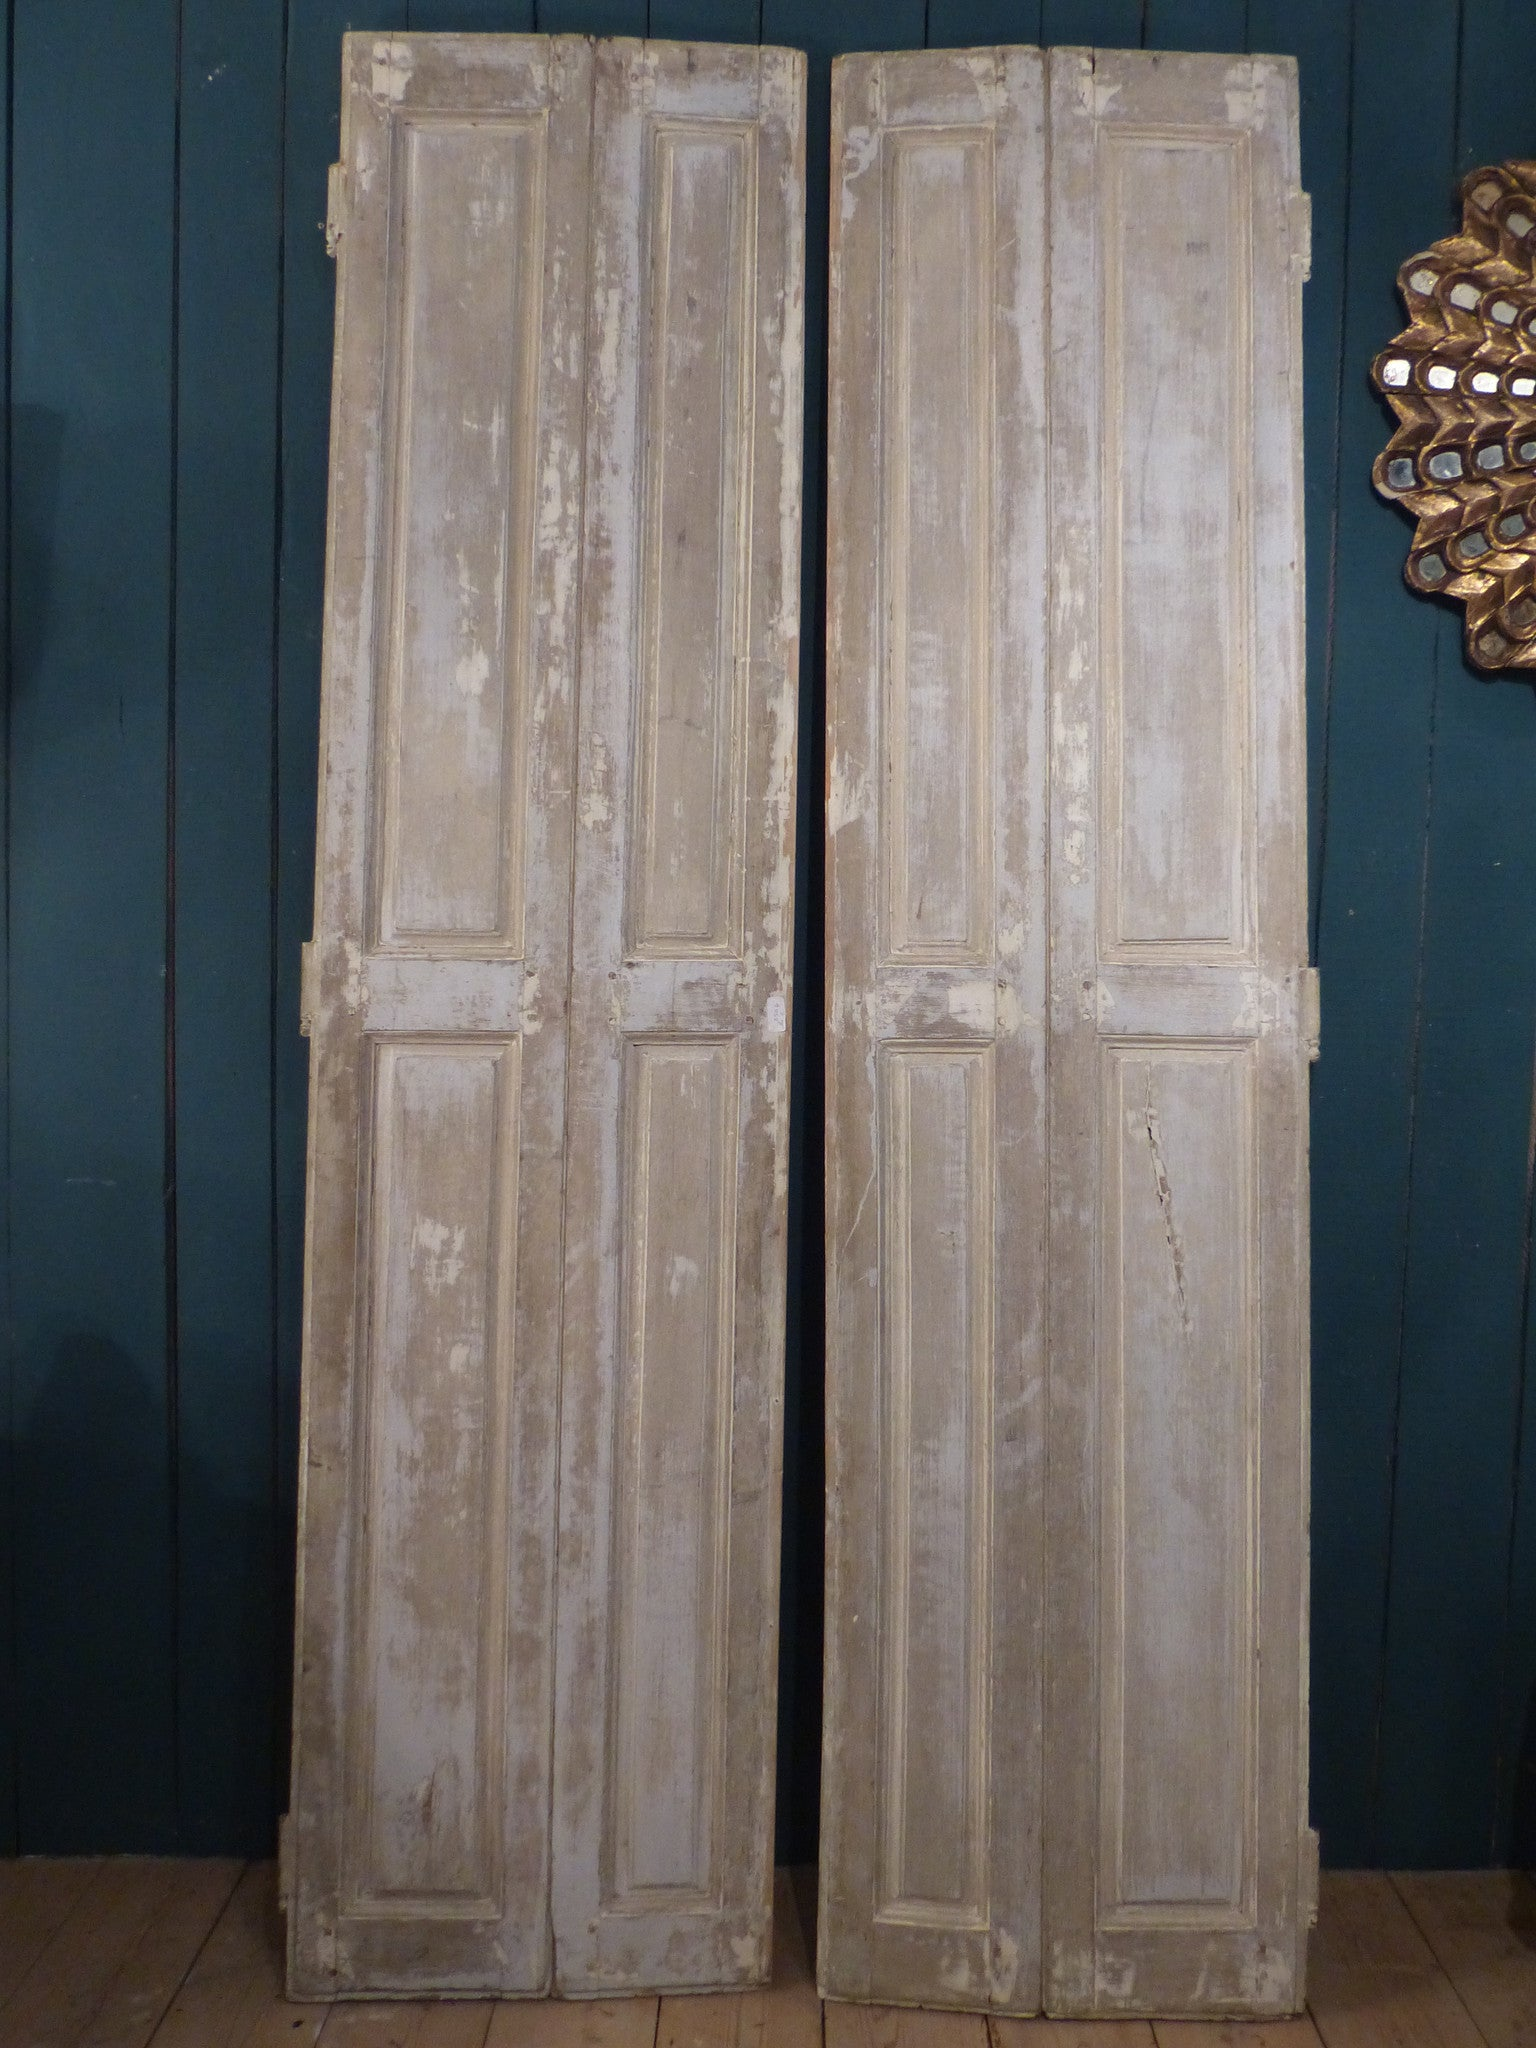 Pair of 19th century shutters with white patina modern farmhouse décor